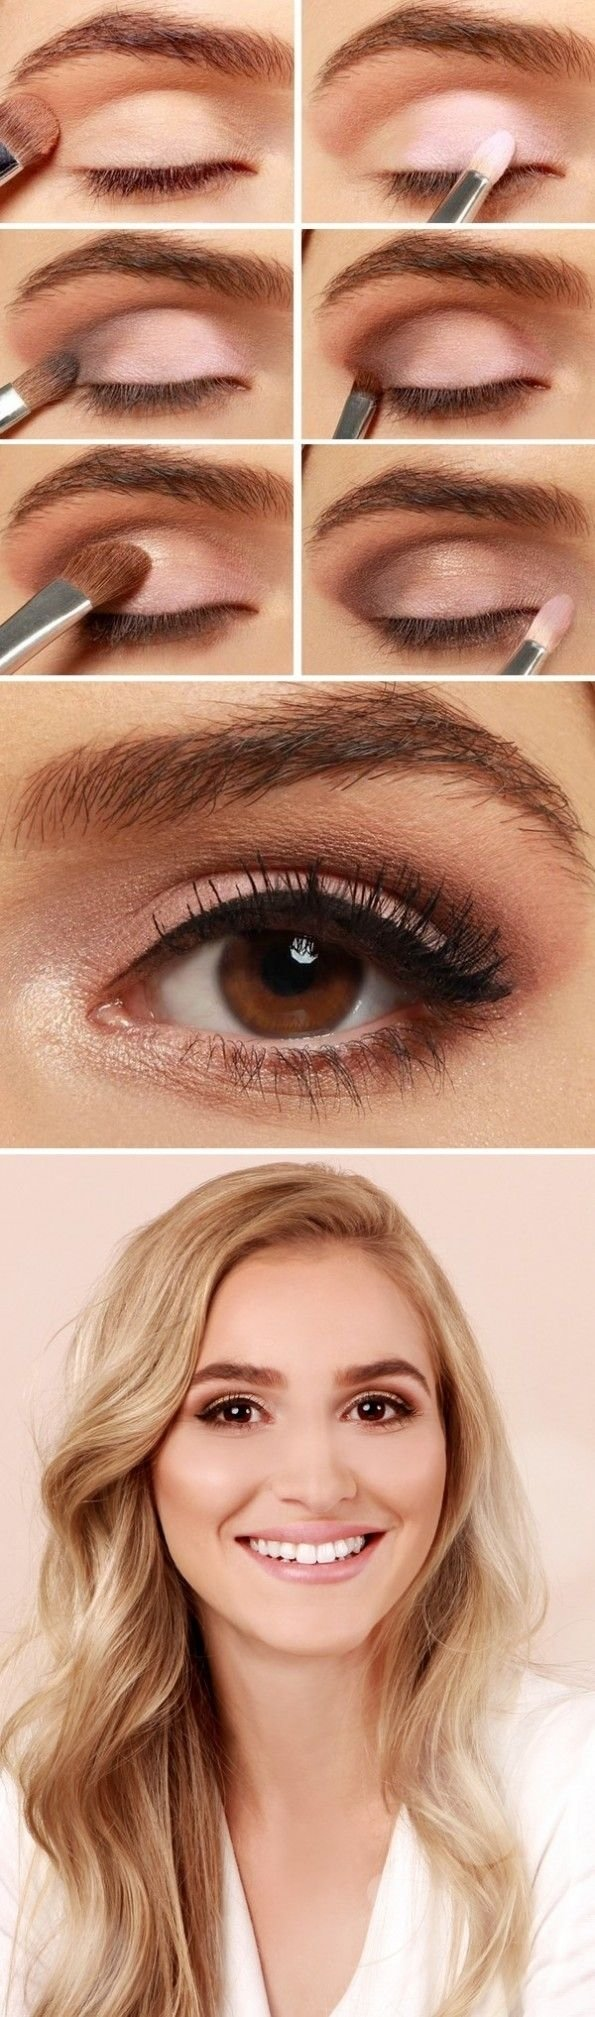 10 Awesome Cute Makeup Ideas For Brown Eyes 27 pretty makeup tutorials for brown eyes styles weekly 5 2020